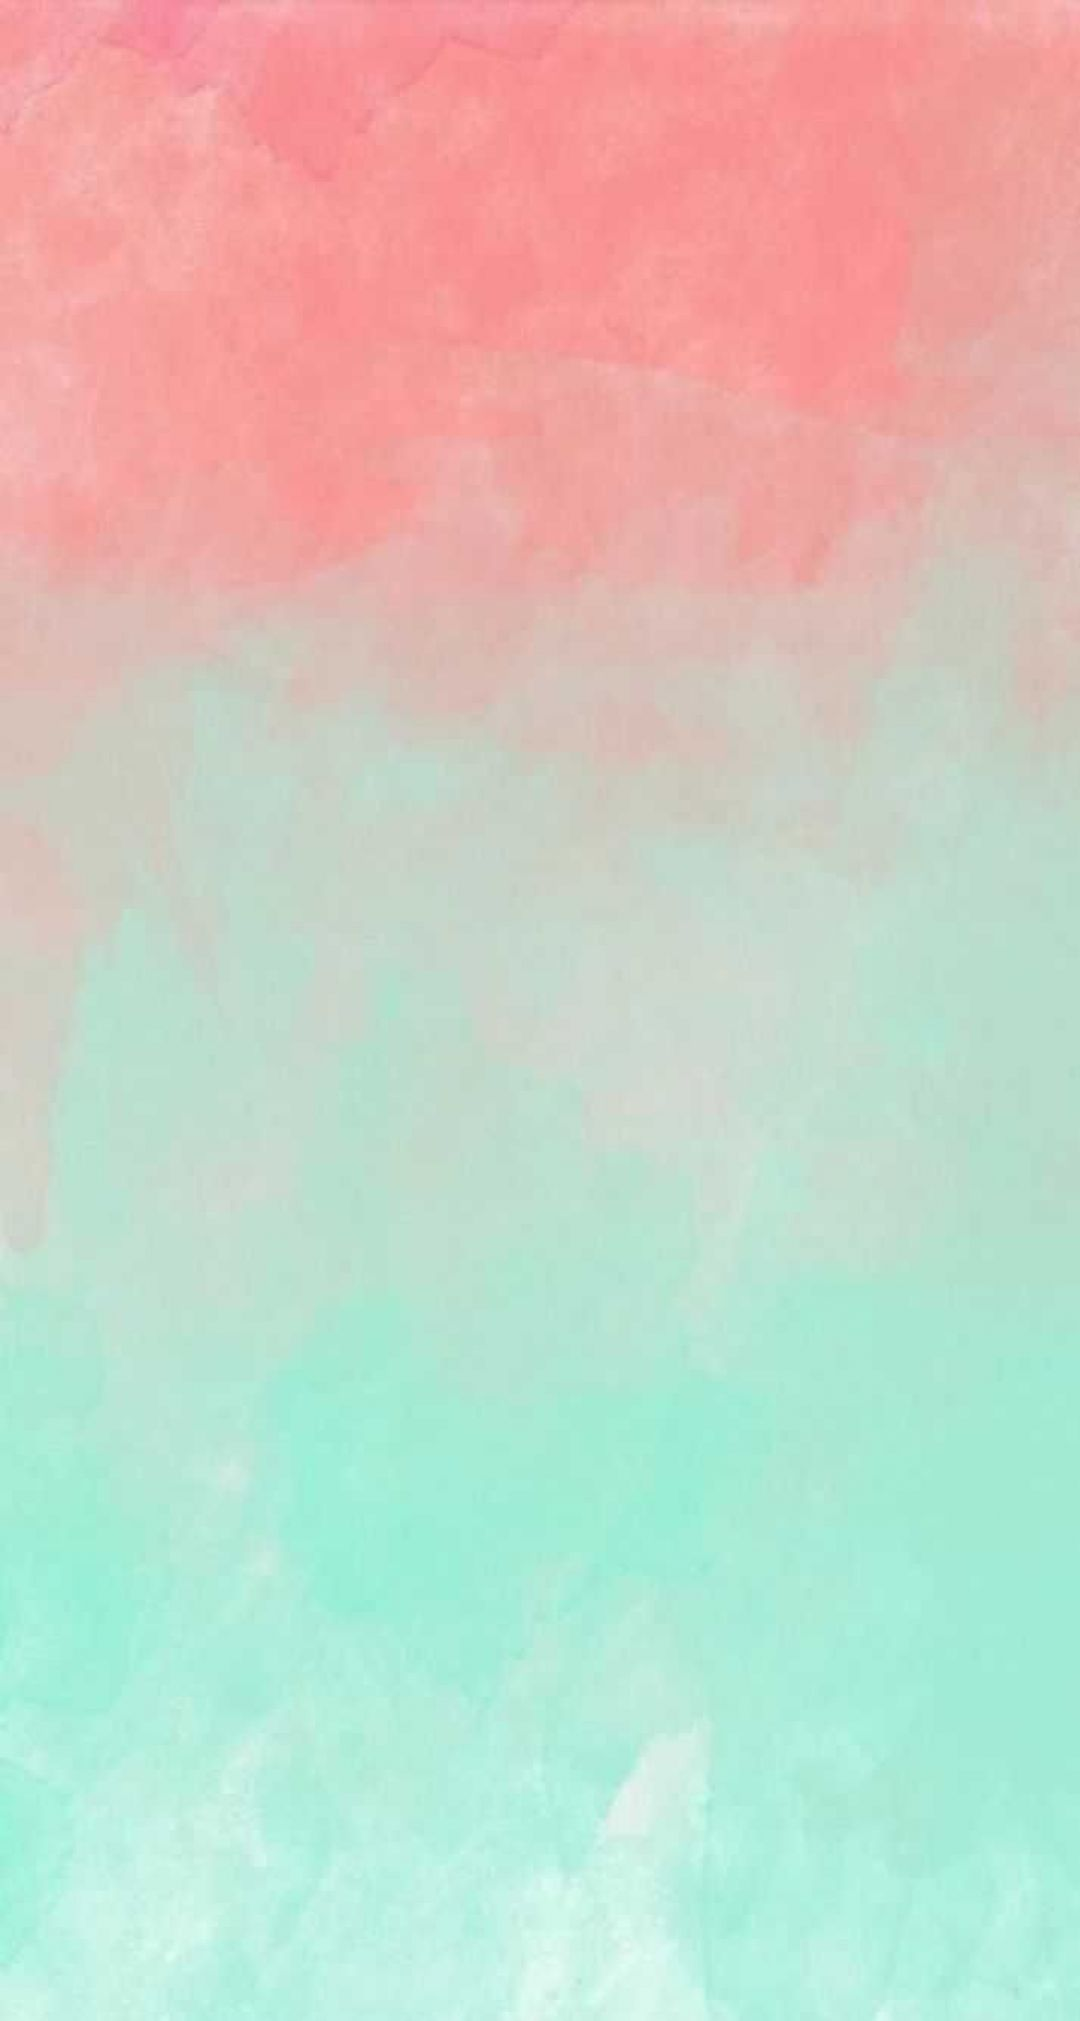 45 Mint Green Aesthetic Hd Wallpapers Desktop Background Android Iphone 1080p 4k 1080x2021 2020